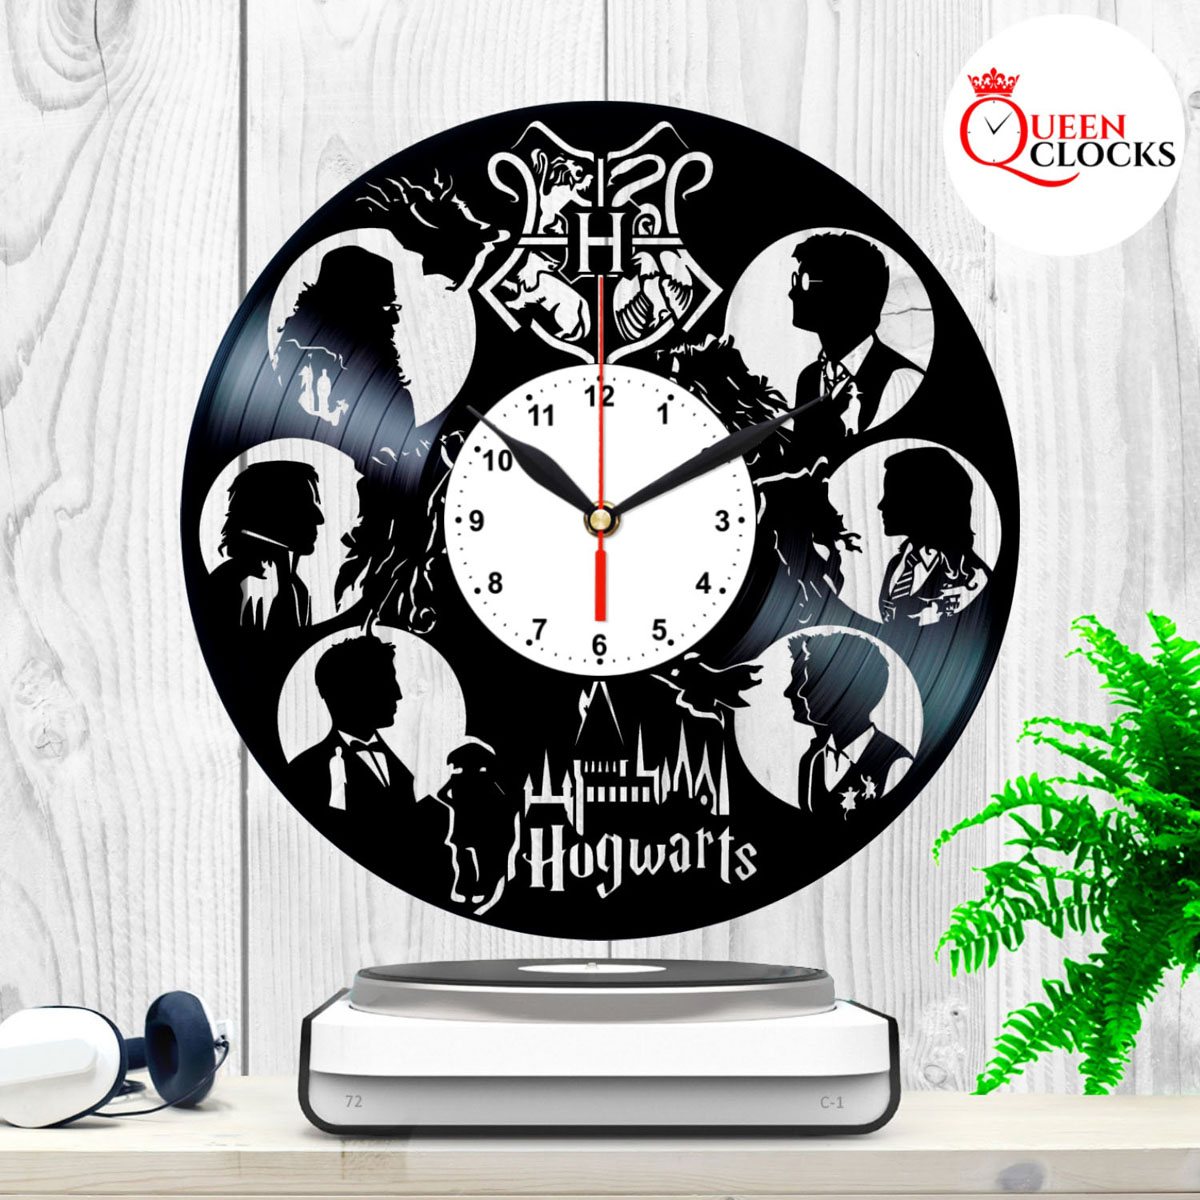 Nightmare Before Christmas Vinyl Wall Clock Art Gift Room Modern Home Record Vintage Decoration Gift for Fans Home /& Office Bedroom Nursery Room Wall Decor Customize Your Clock !